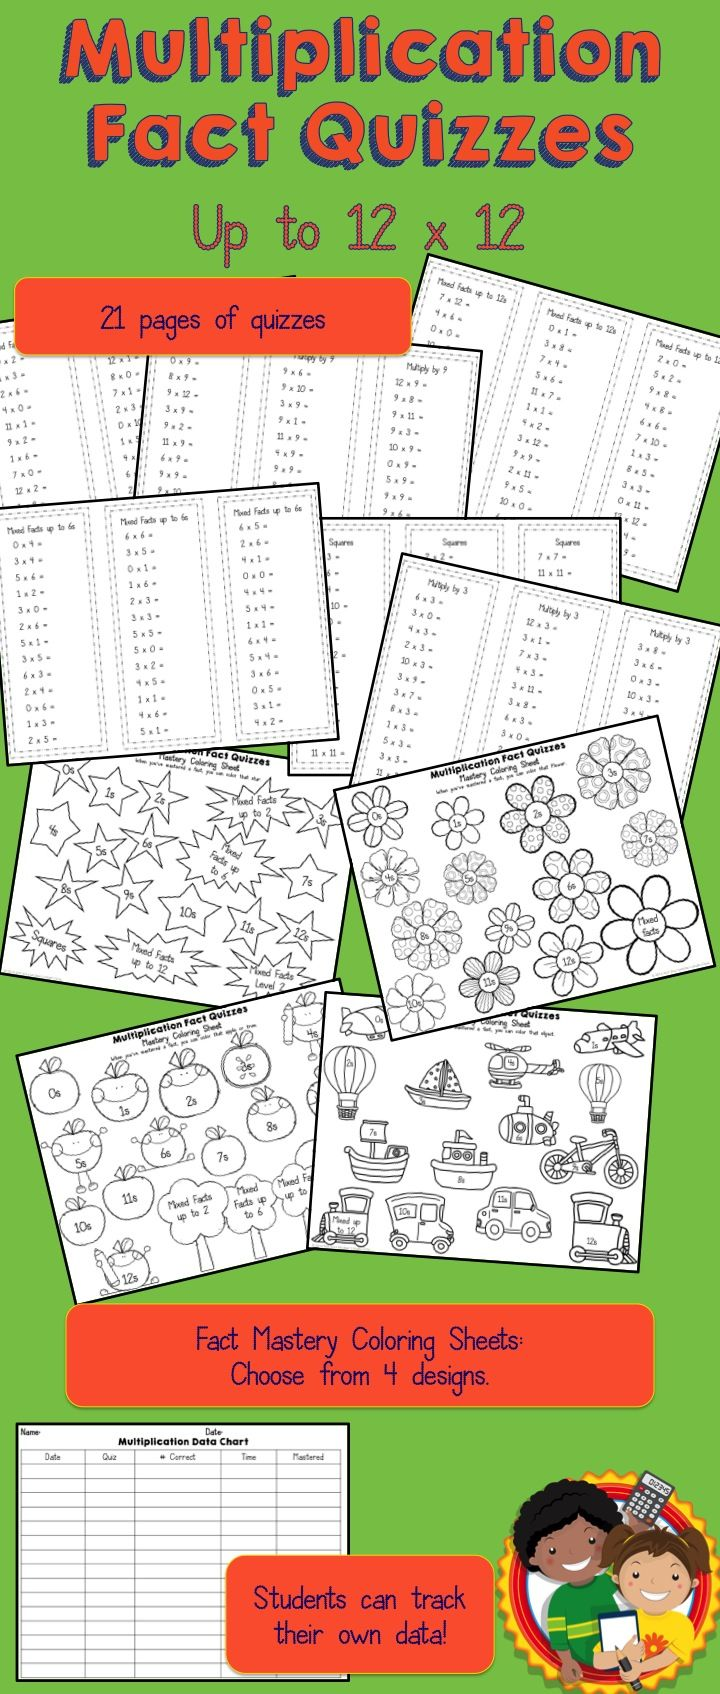 Multiplication Fact Quizzes   Multiplication facts, Recording sheets ...